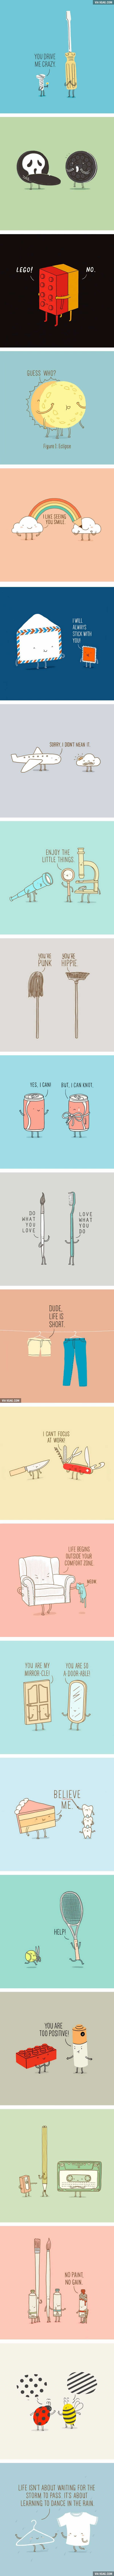 The Cutest Conversations Between Everyday's Objects (By Lim Heng Swee)